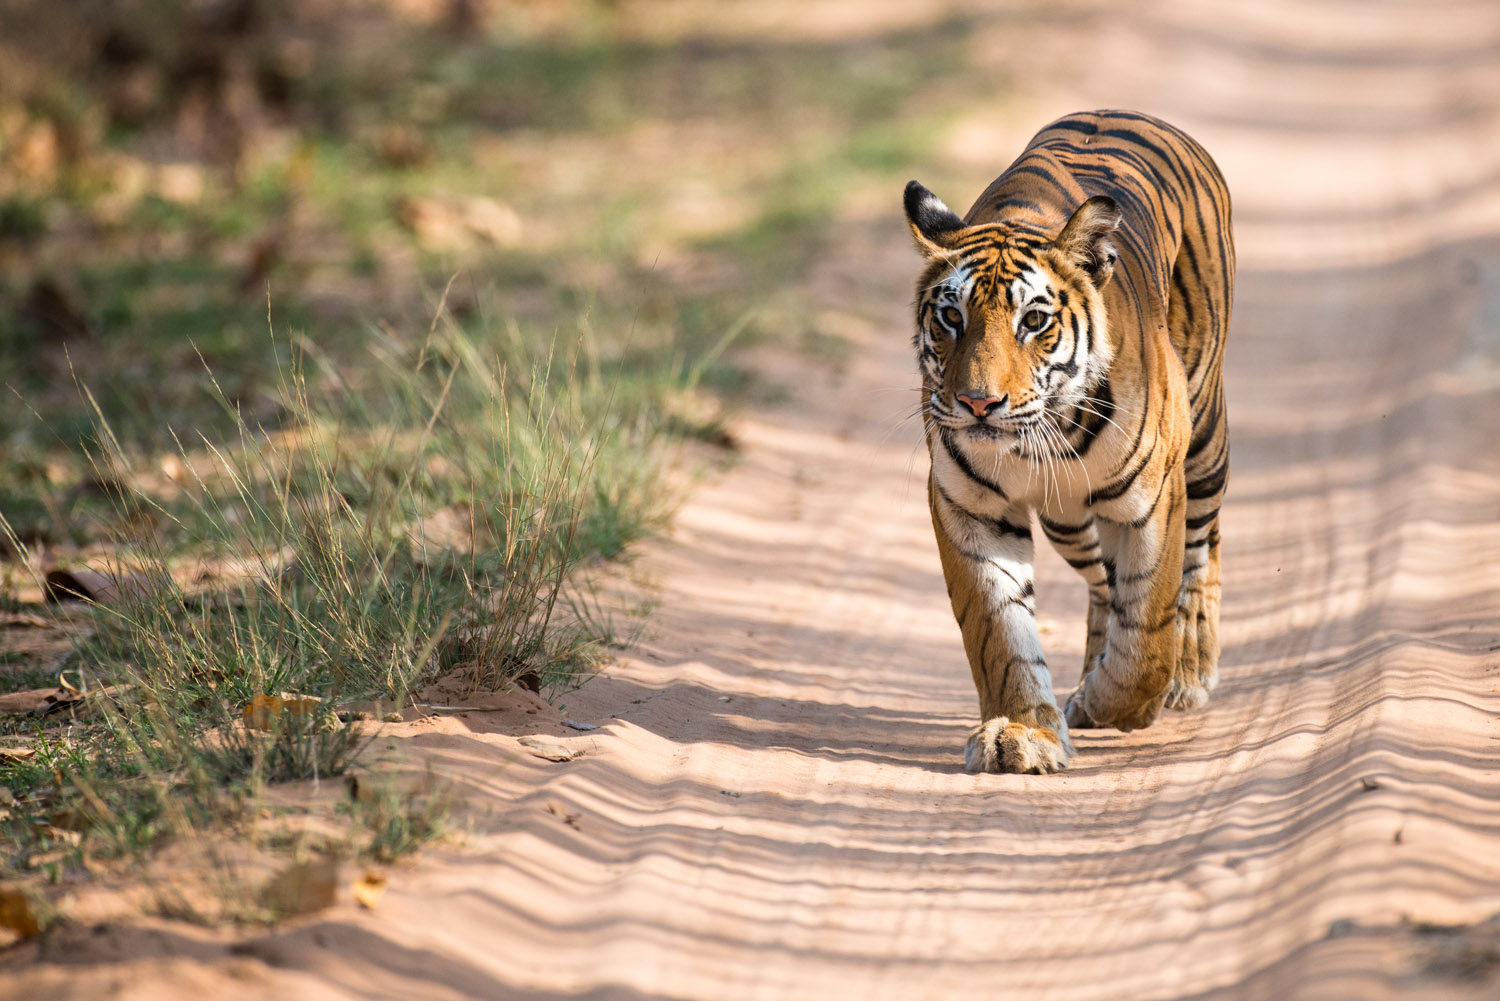 Bengal tigress walking along forest track, Bandhavgarh National Park, Madhya Pradesh, India